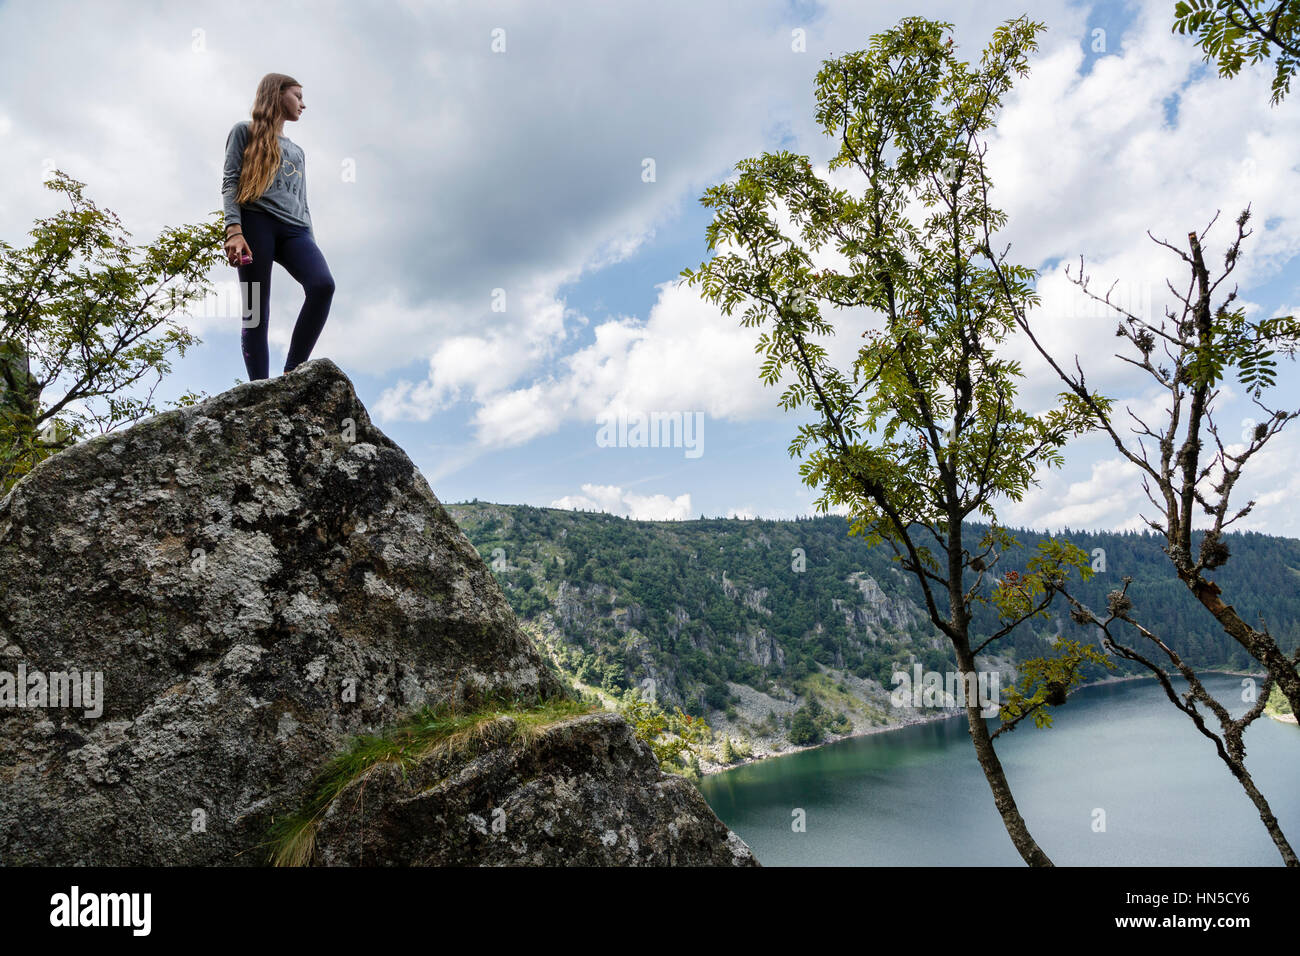 Girl admiring the view from Rocher Hans above Lac Blanc, Haut-Rhin, Alsace, France - Stock Image